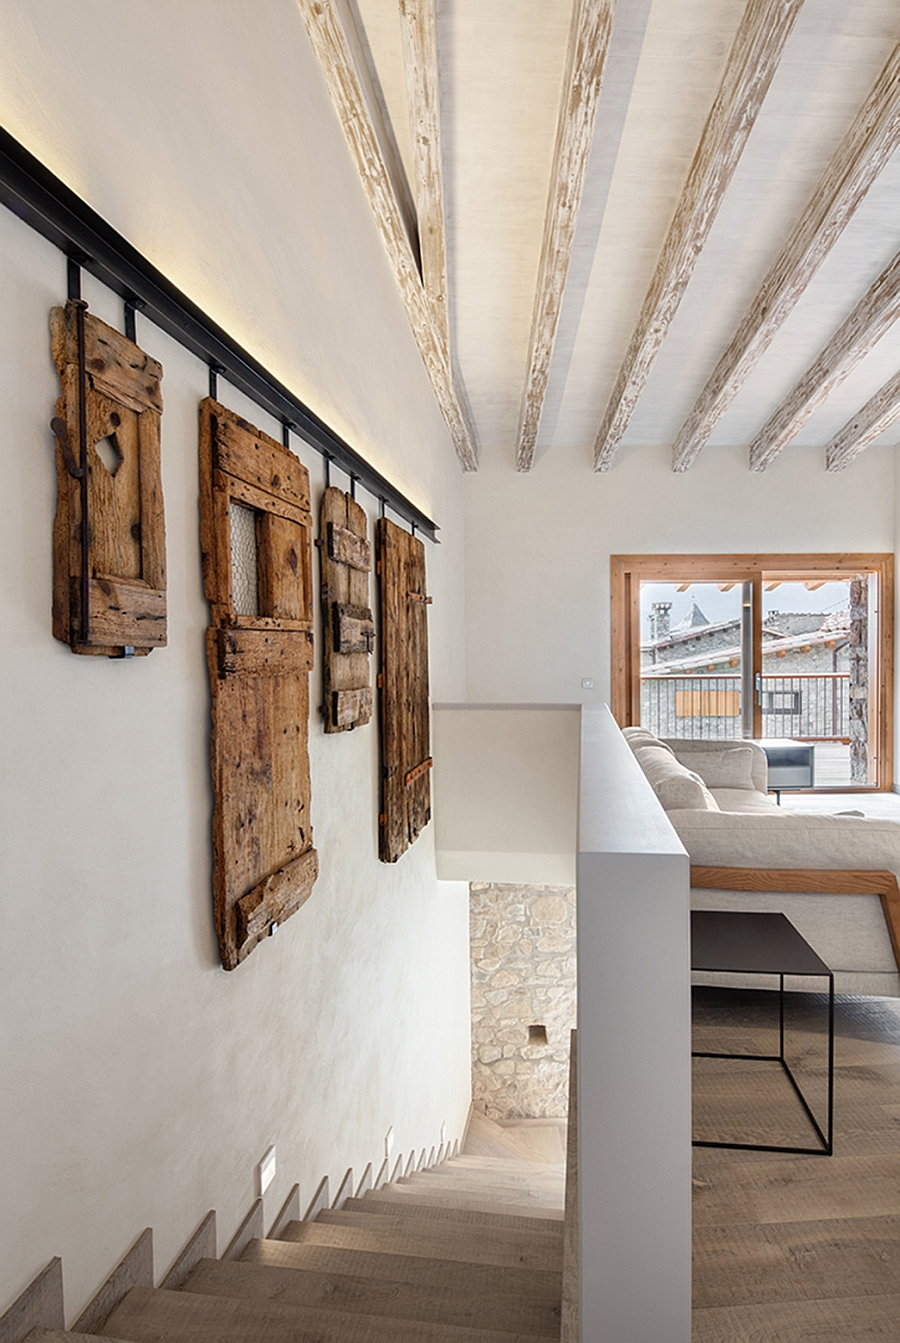 Spanish Revival: Old Farmhouse Transformed into a Striking ...